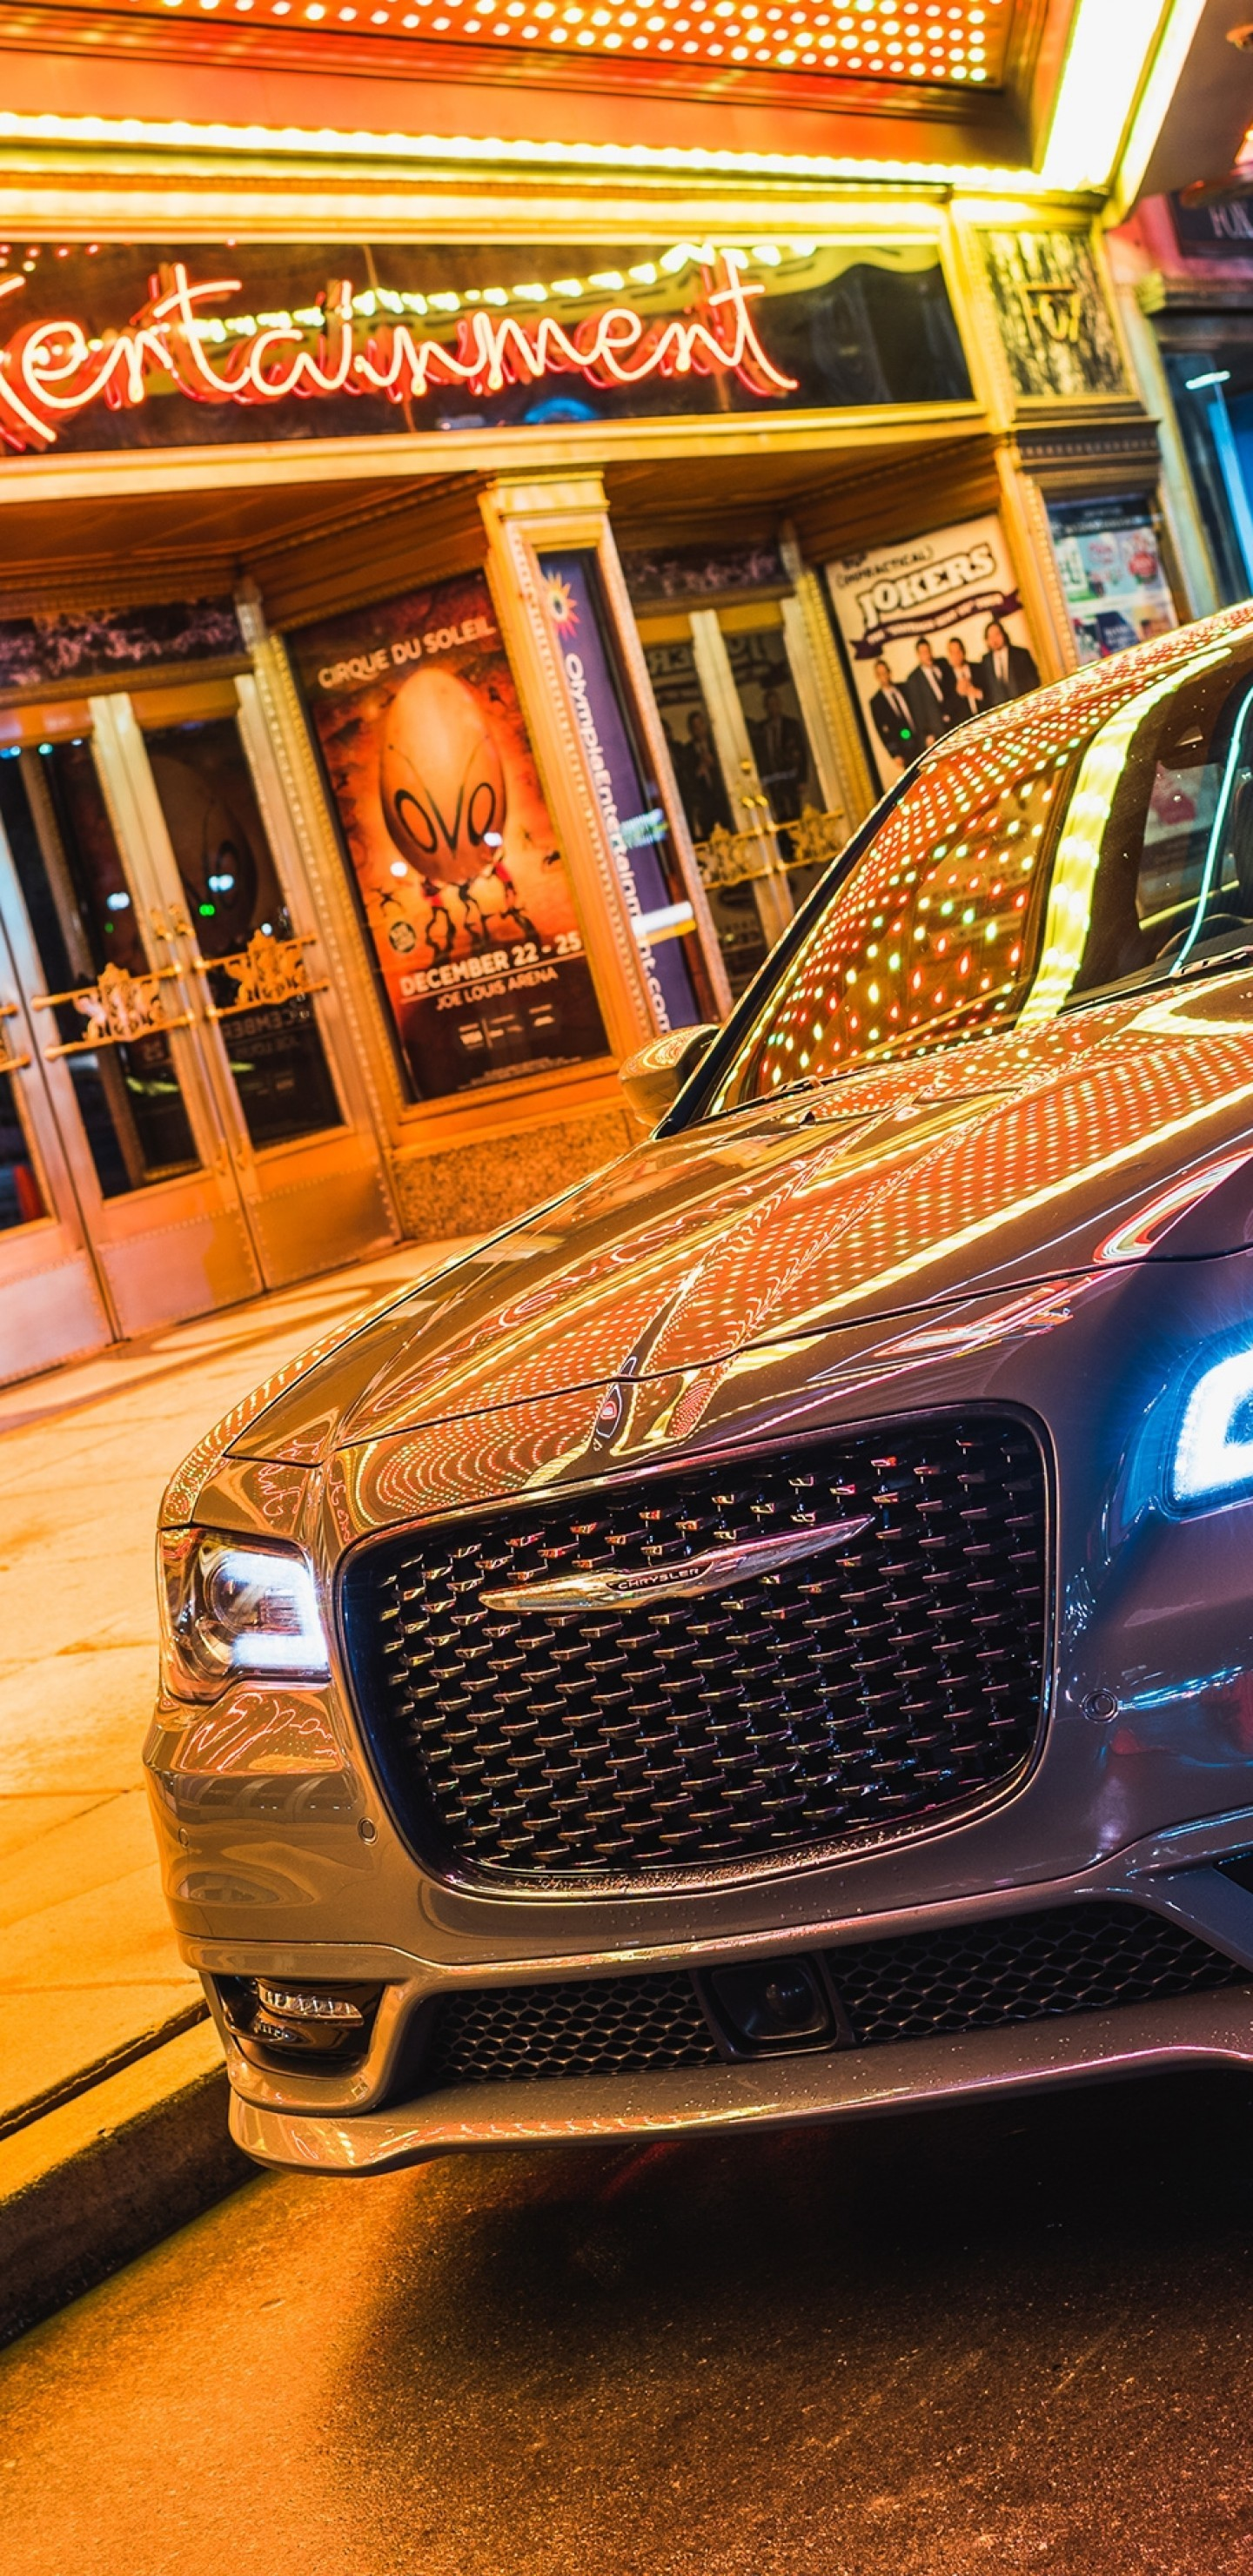 Download 1440x2960 Chrysler 300s, Luxury, Cars, Street Wallpapers ...